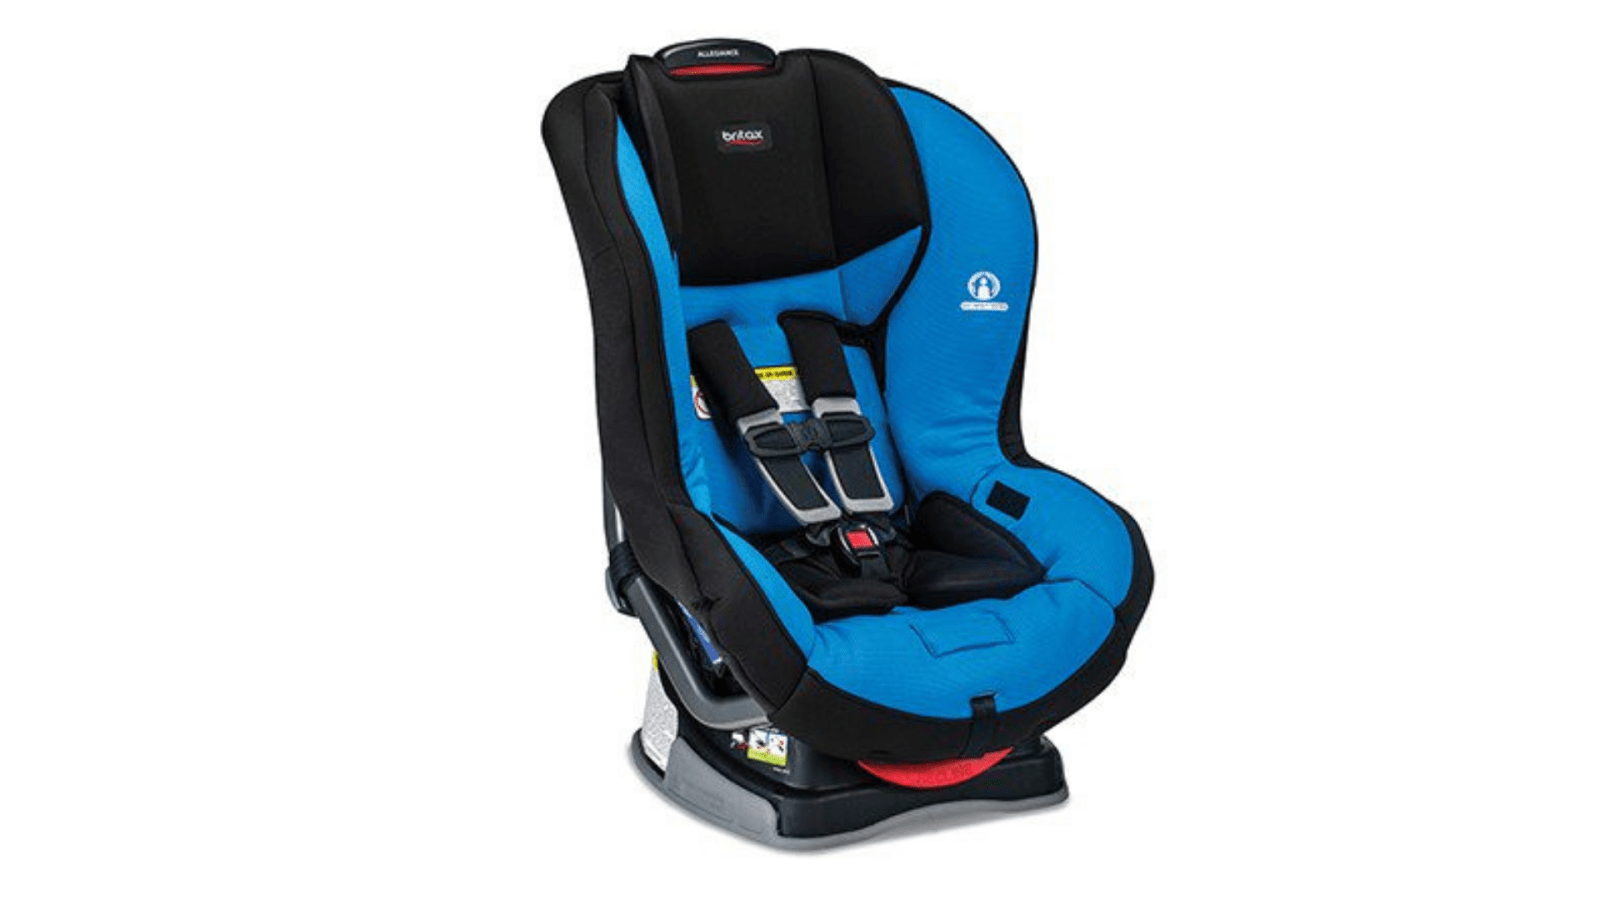 Trade In Your Old Car Seats This Month At Target Lifehacker